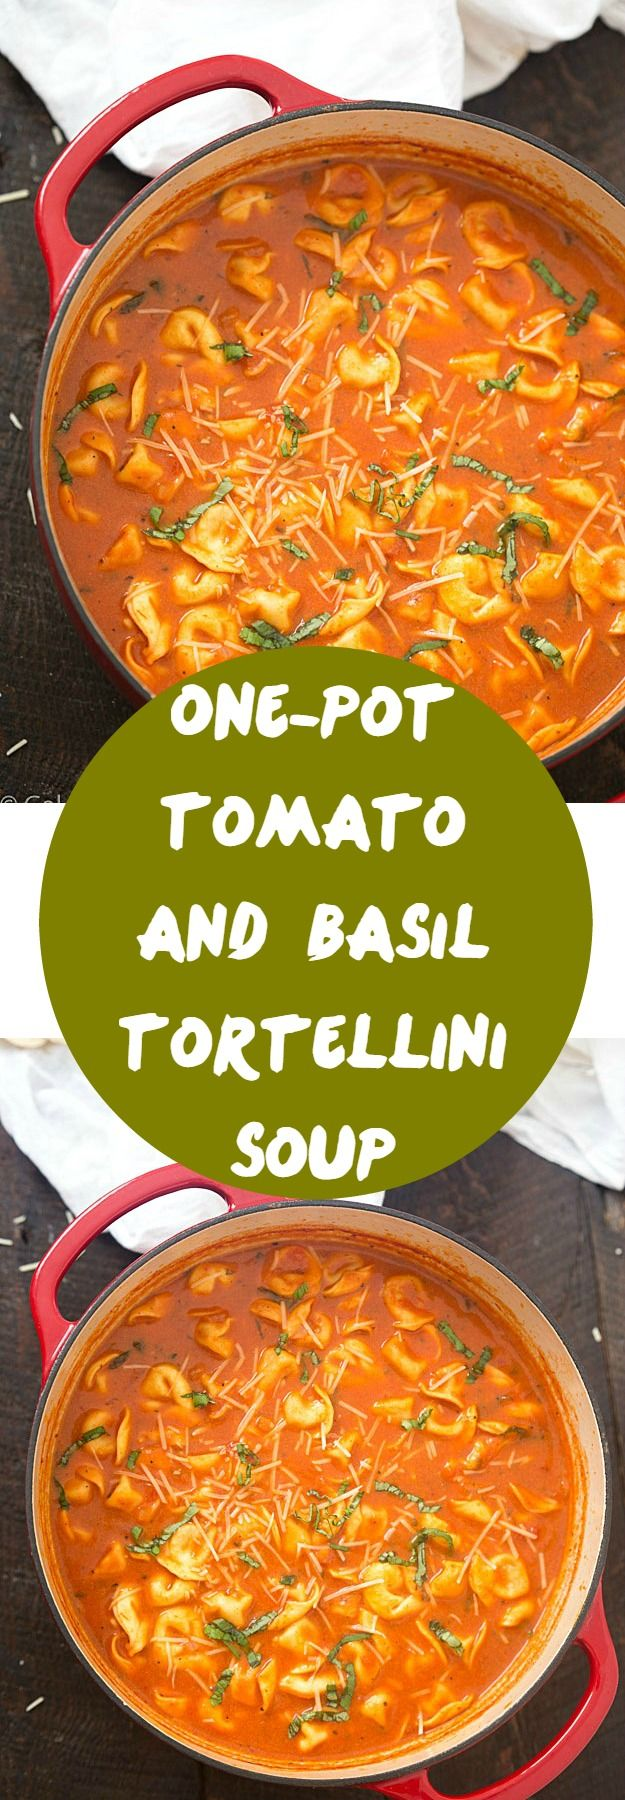 Spicy tomato pasta soup recipe